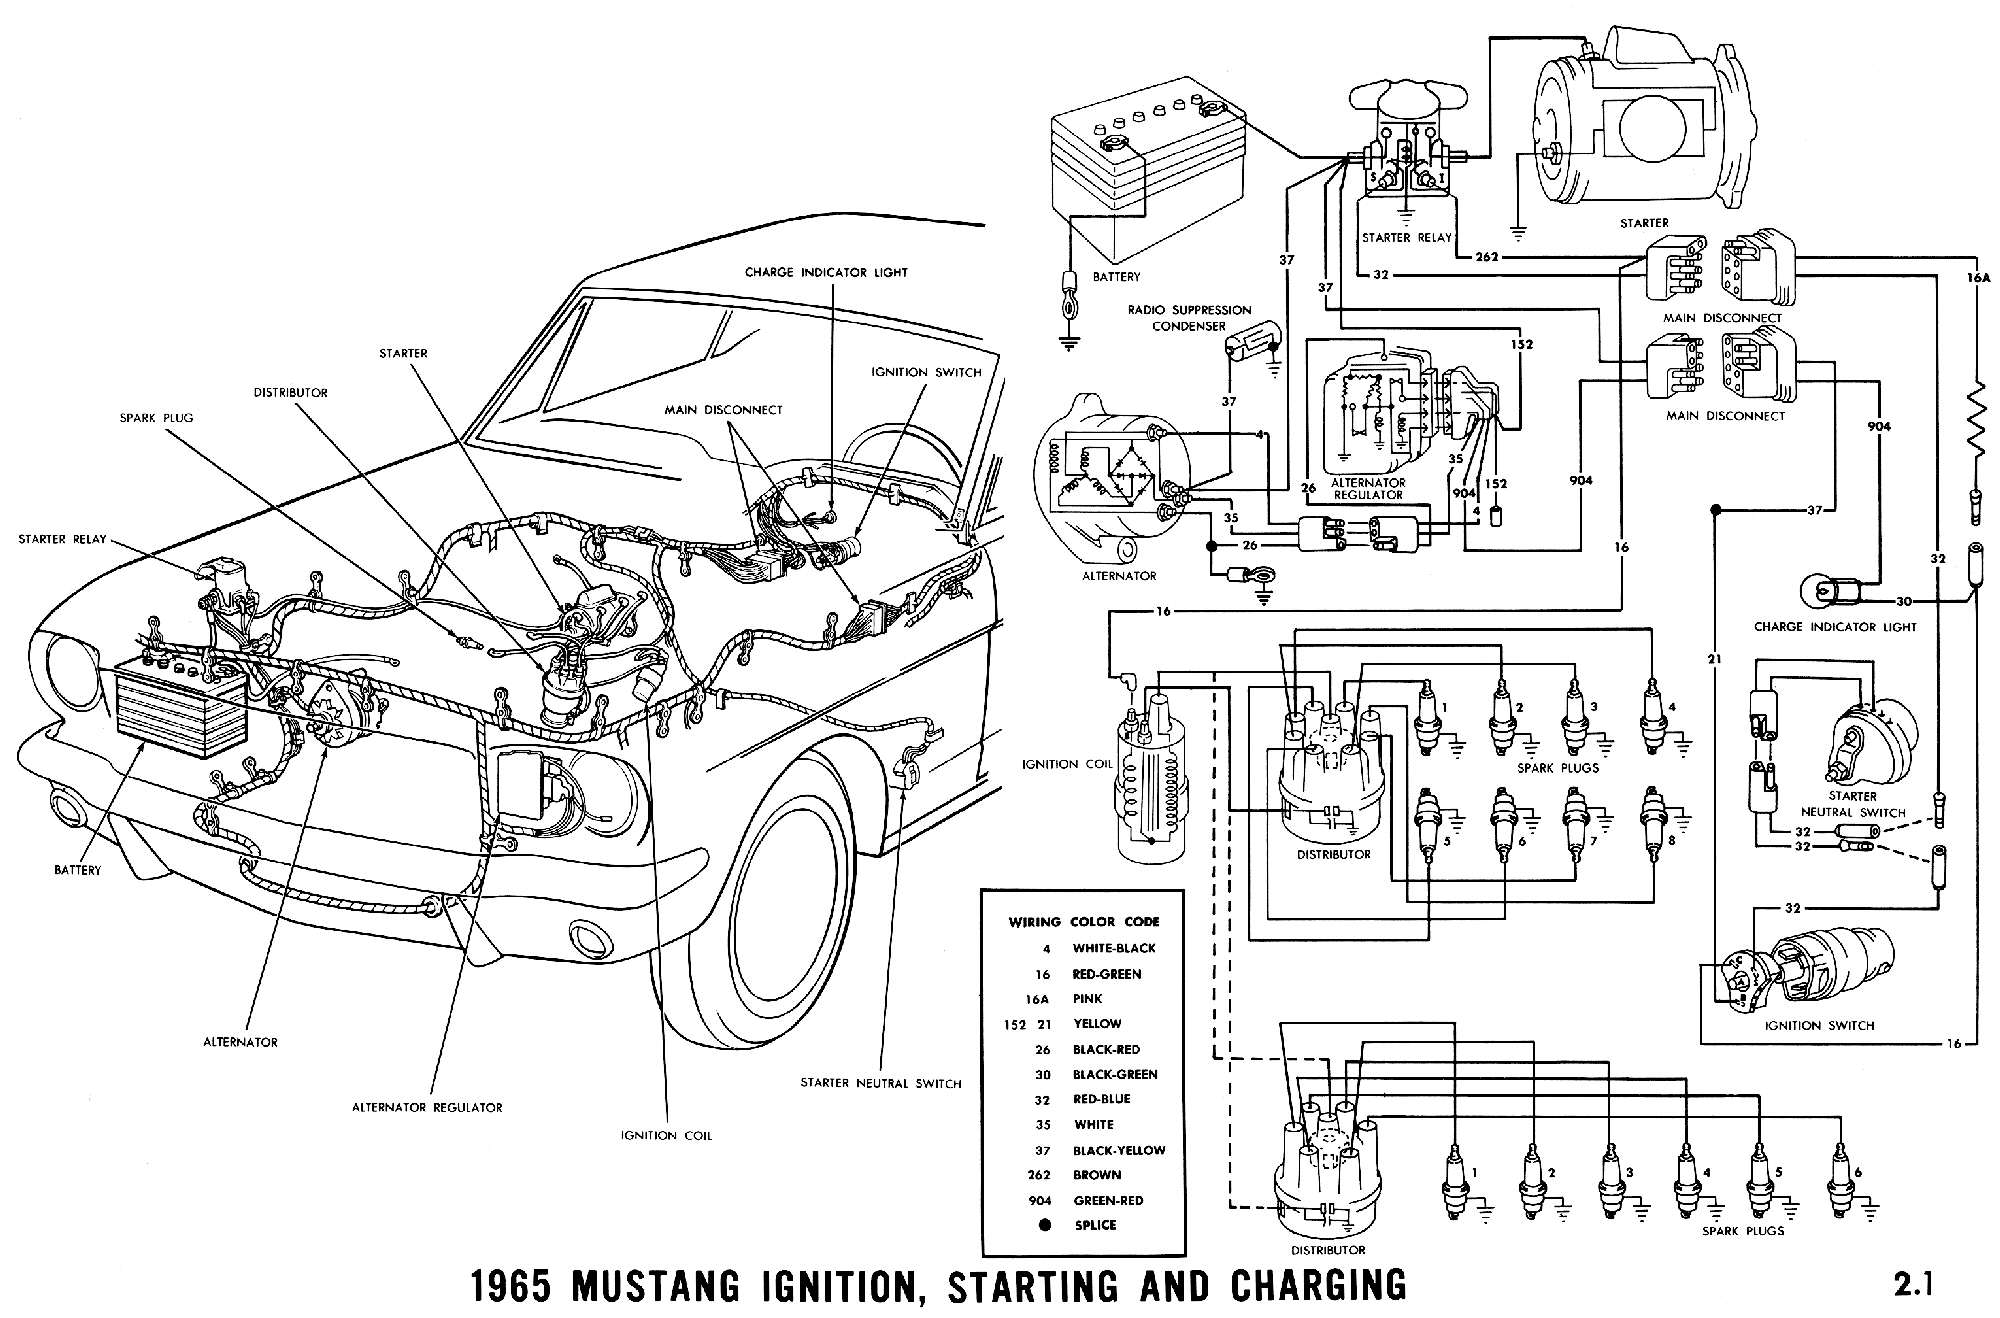 1965c 1965 mustang wiring diagrams average joe restoration 1985 Chevy Truck Wiring Harness at webbmarketing.co